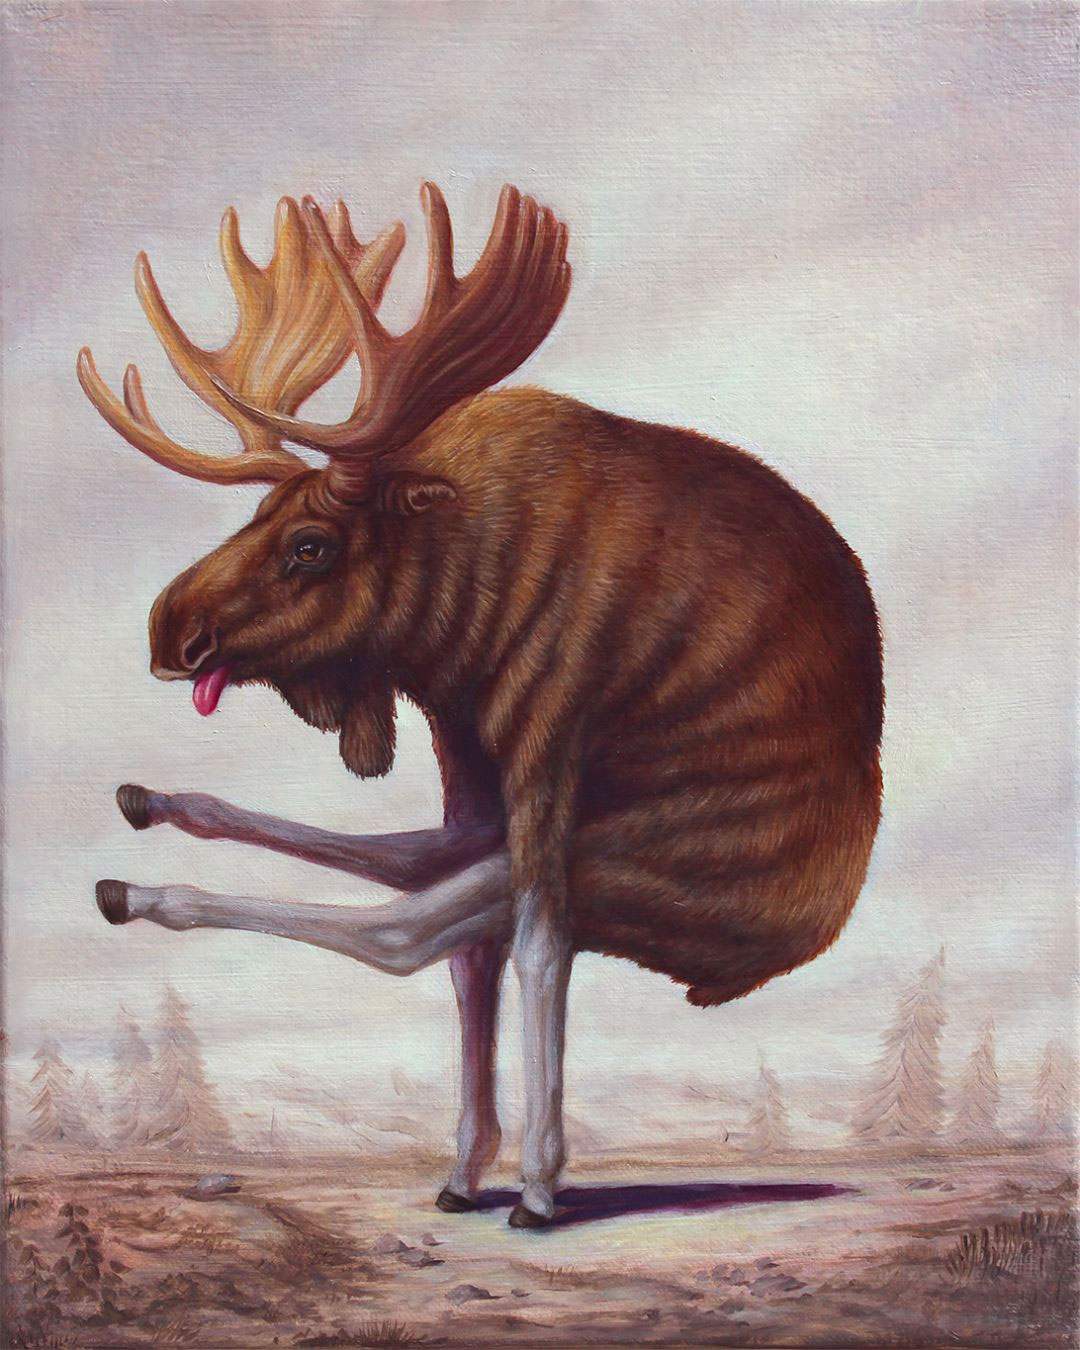 https://www.thisiscolossal.com/wp-content/uploads/2019/02/yoga-moose-1.jpg